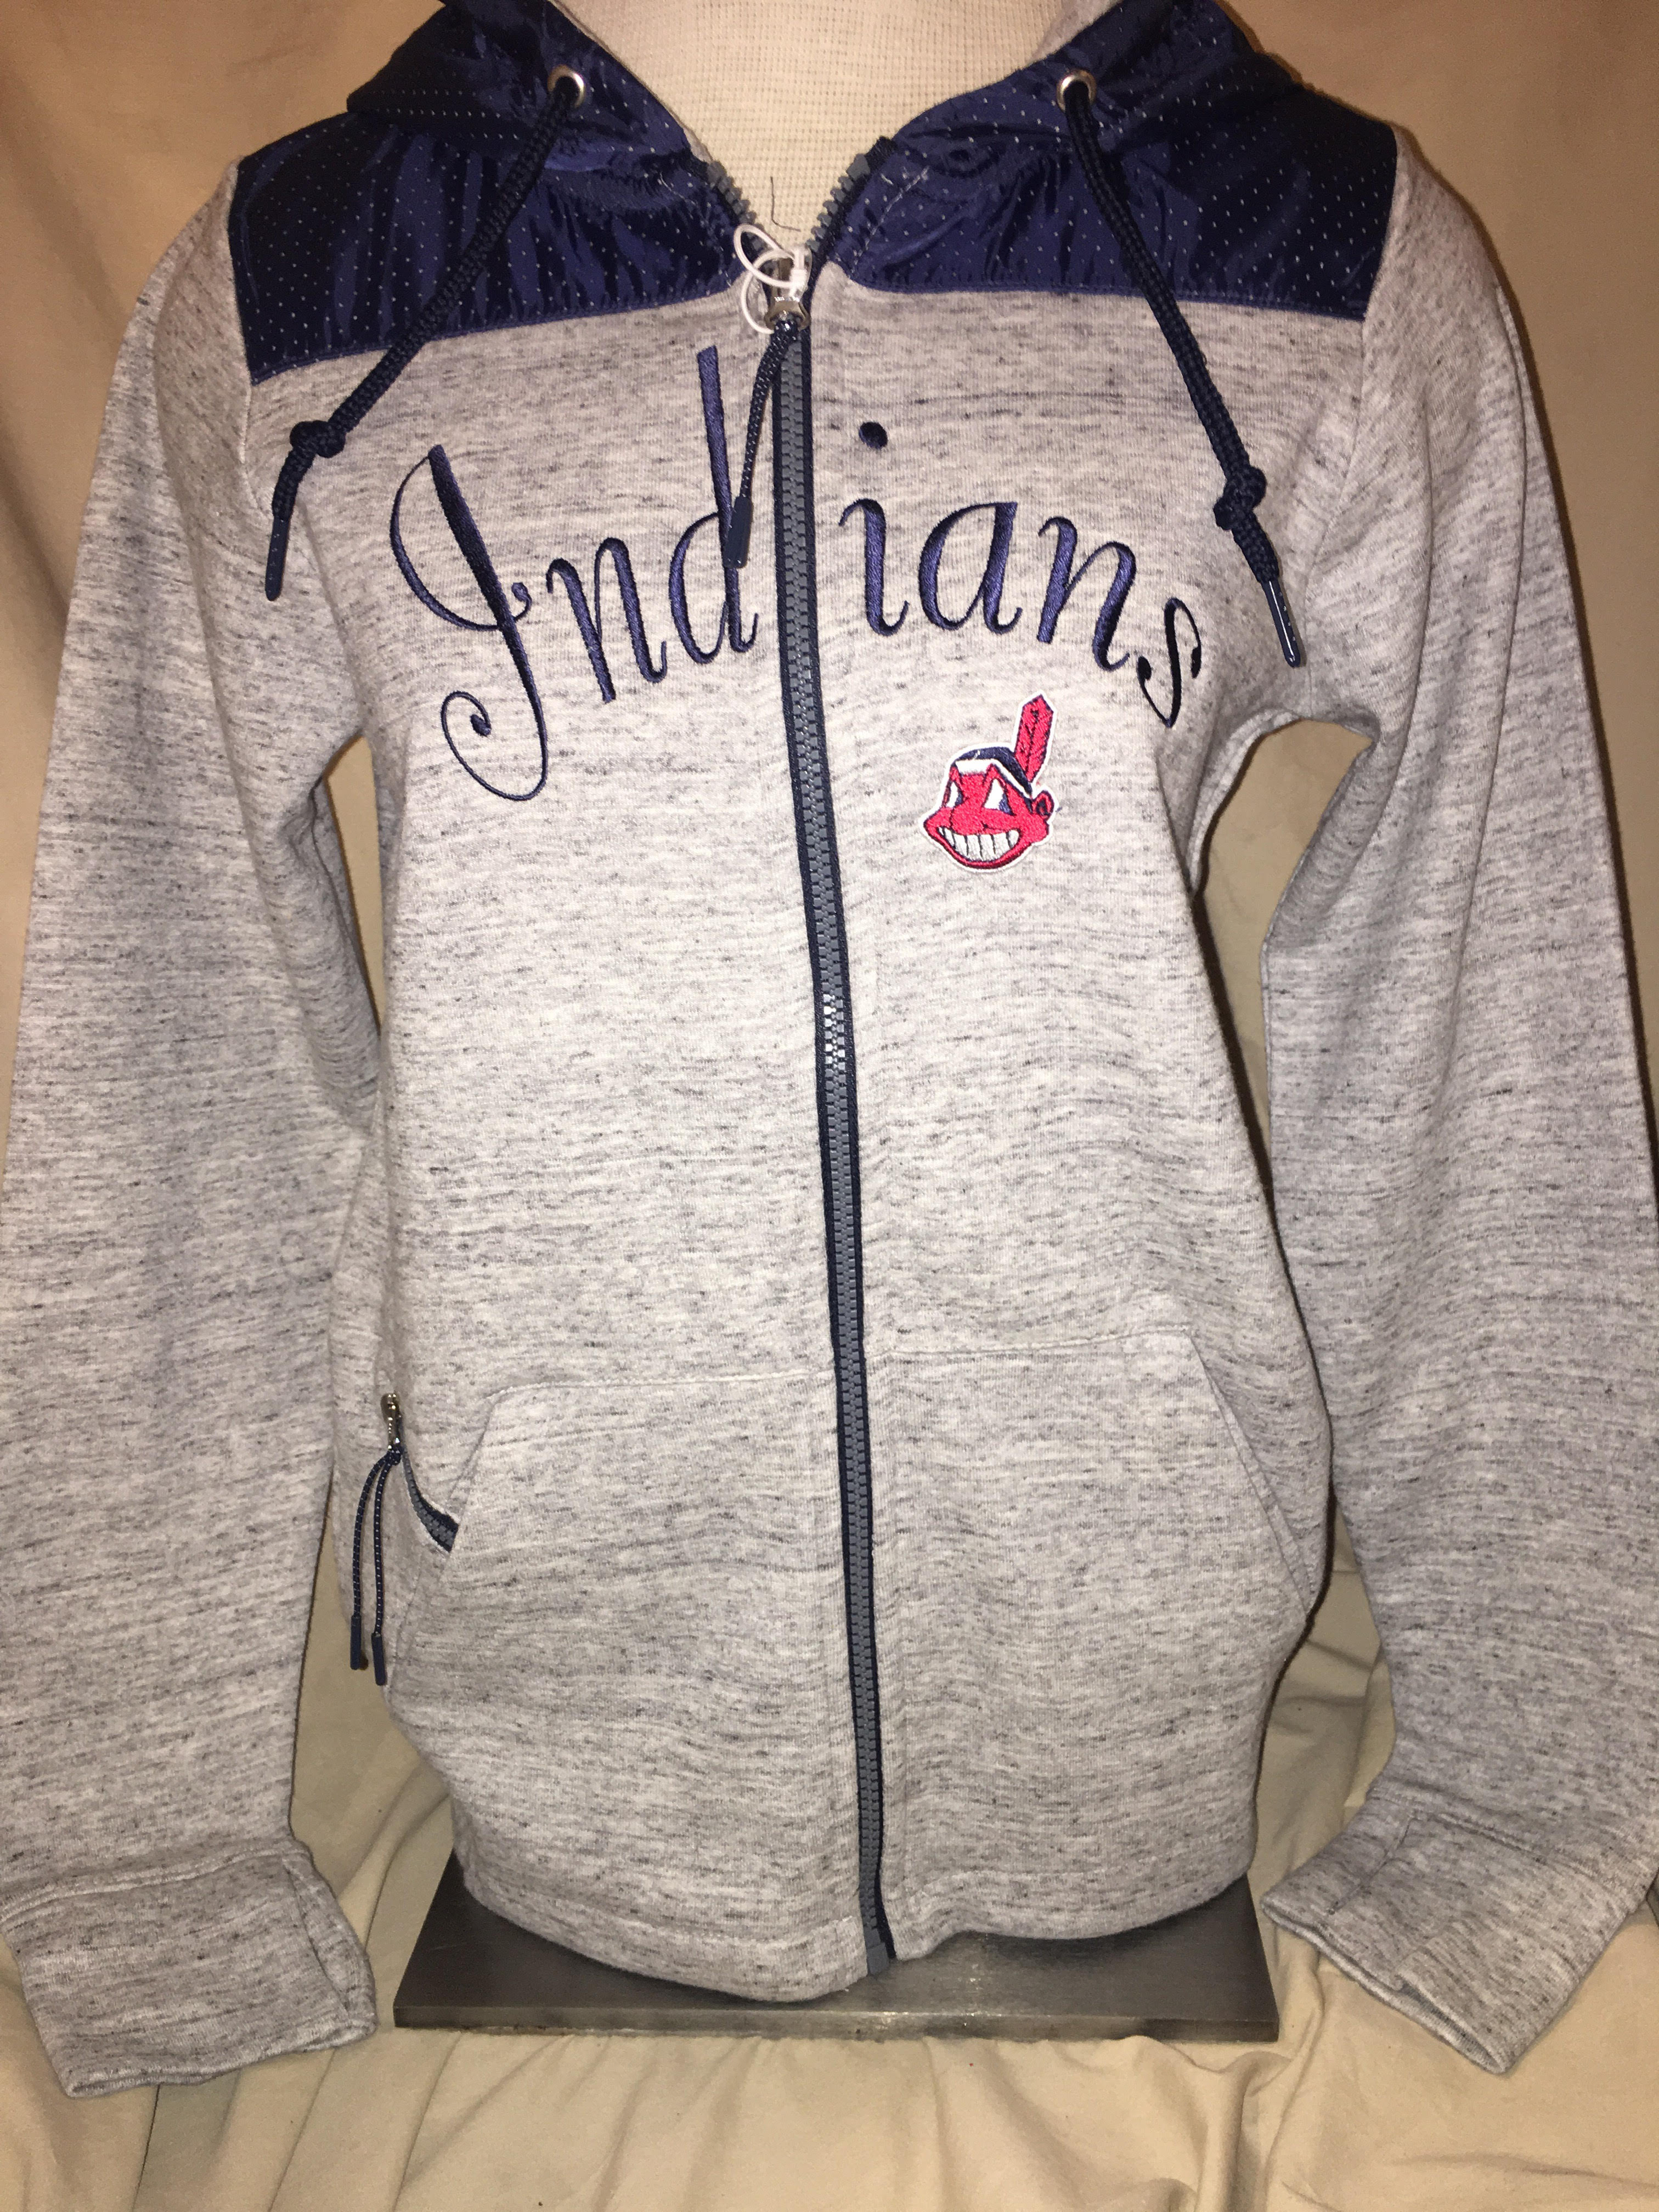 new style 8e914 76f6c Women's Cleveland Indians Antigua Exertion Zip-up Hoodie